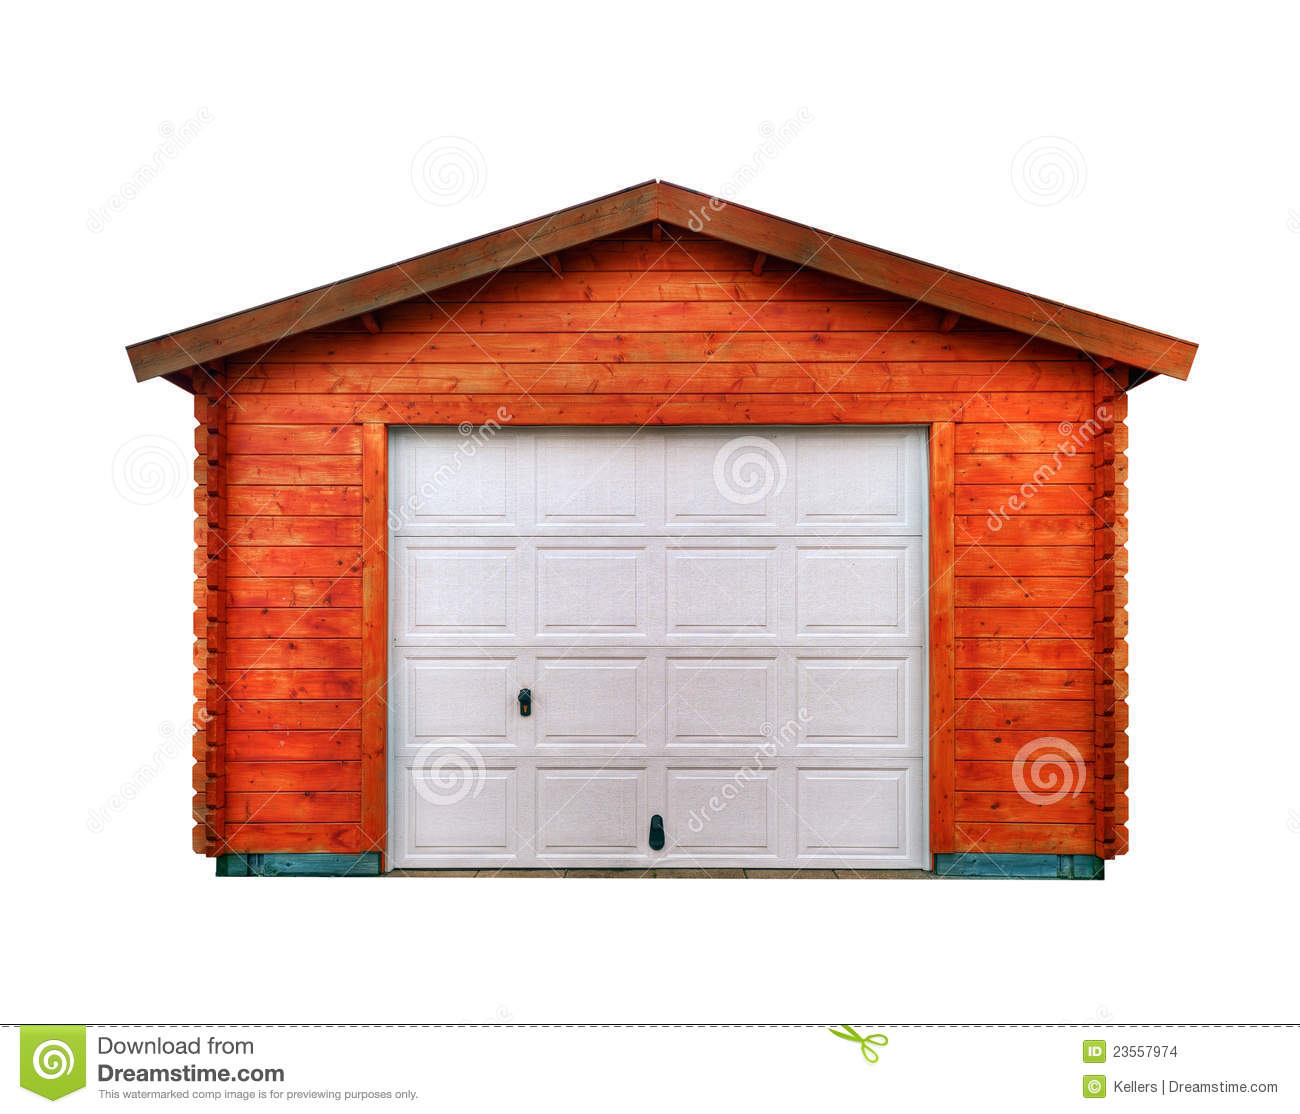 Garage door clip art - New Garage Stock Images Image 23557974